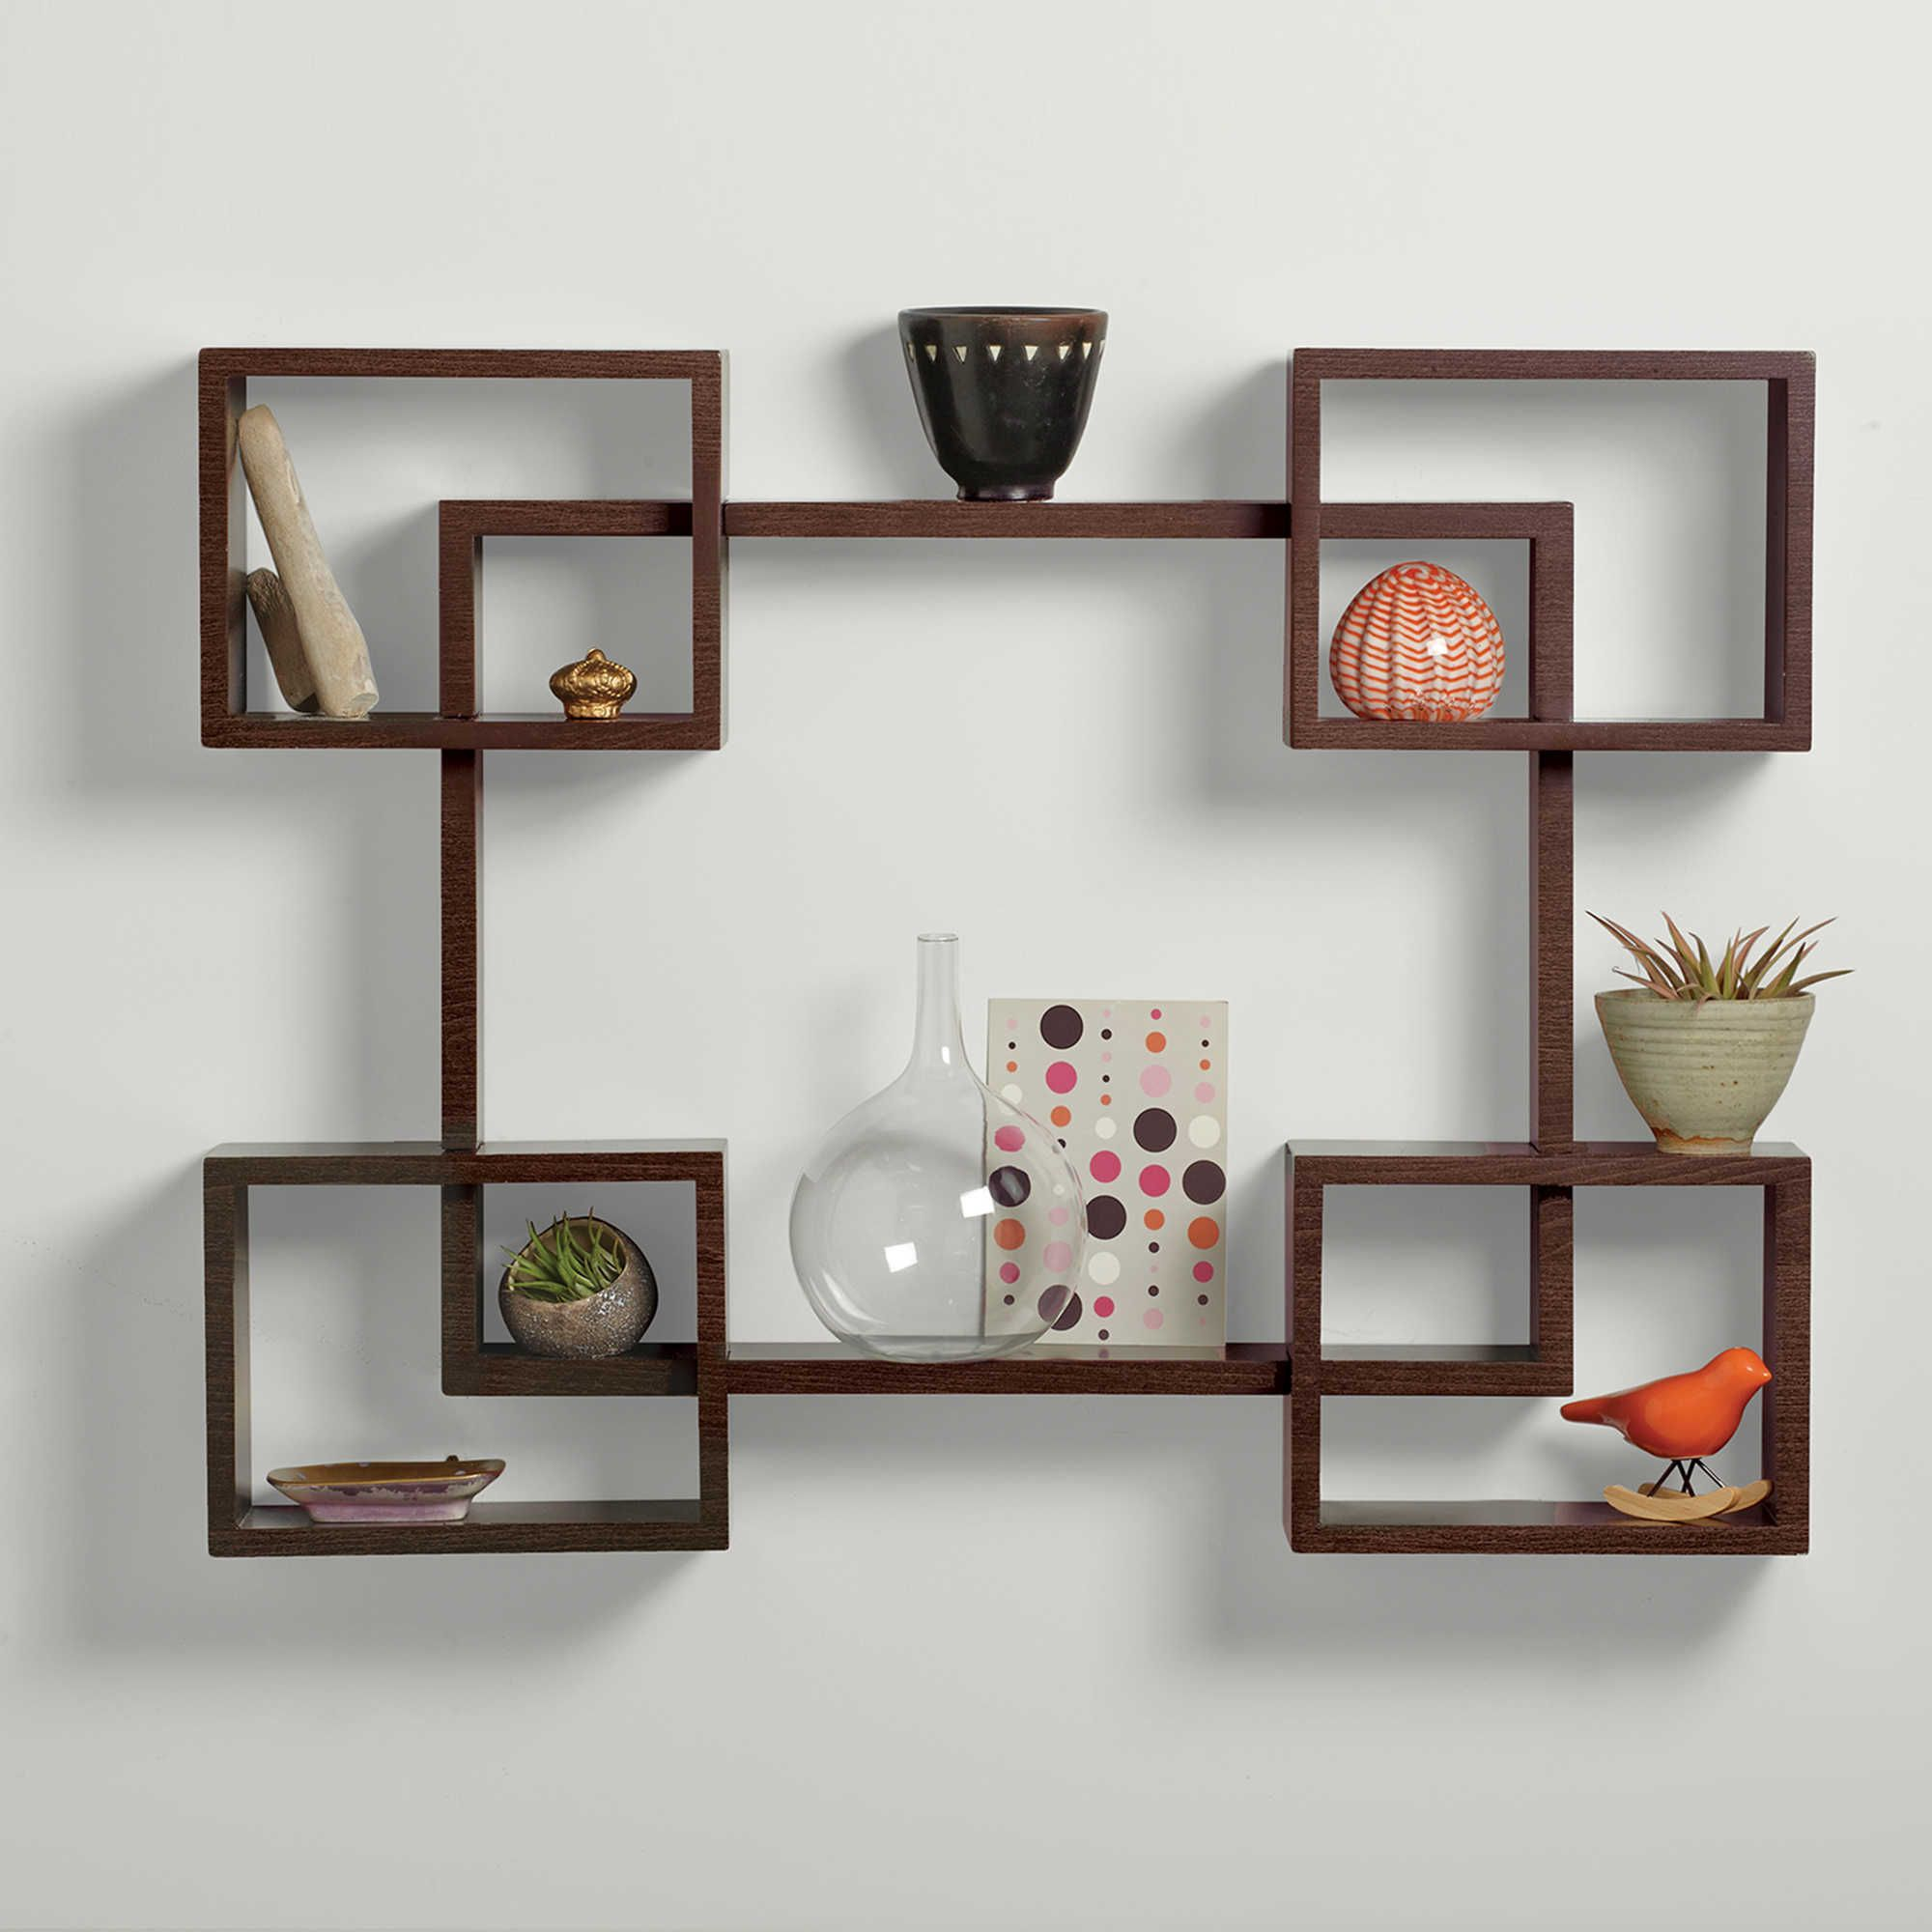 20 of the most creative floating shelf designs wall shelves 20 of the most creative floating shelf designs amipublicfo Gallery